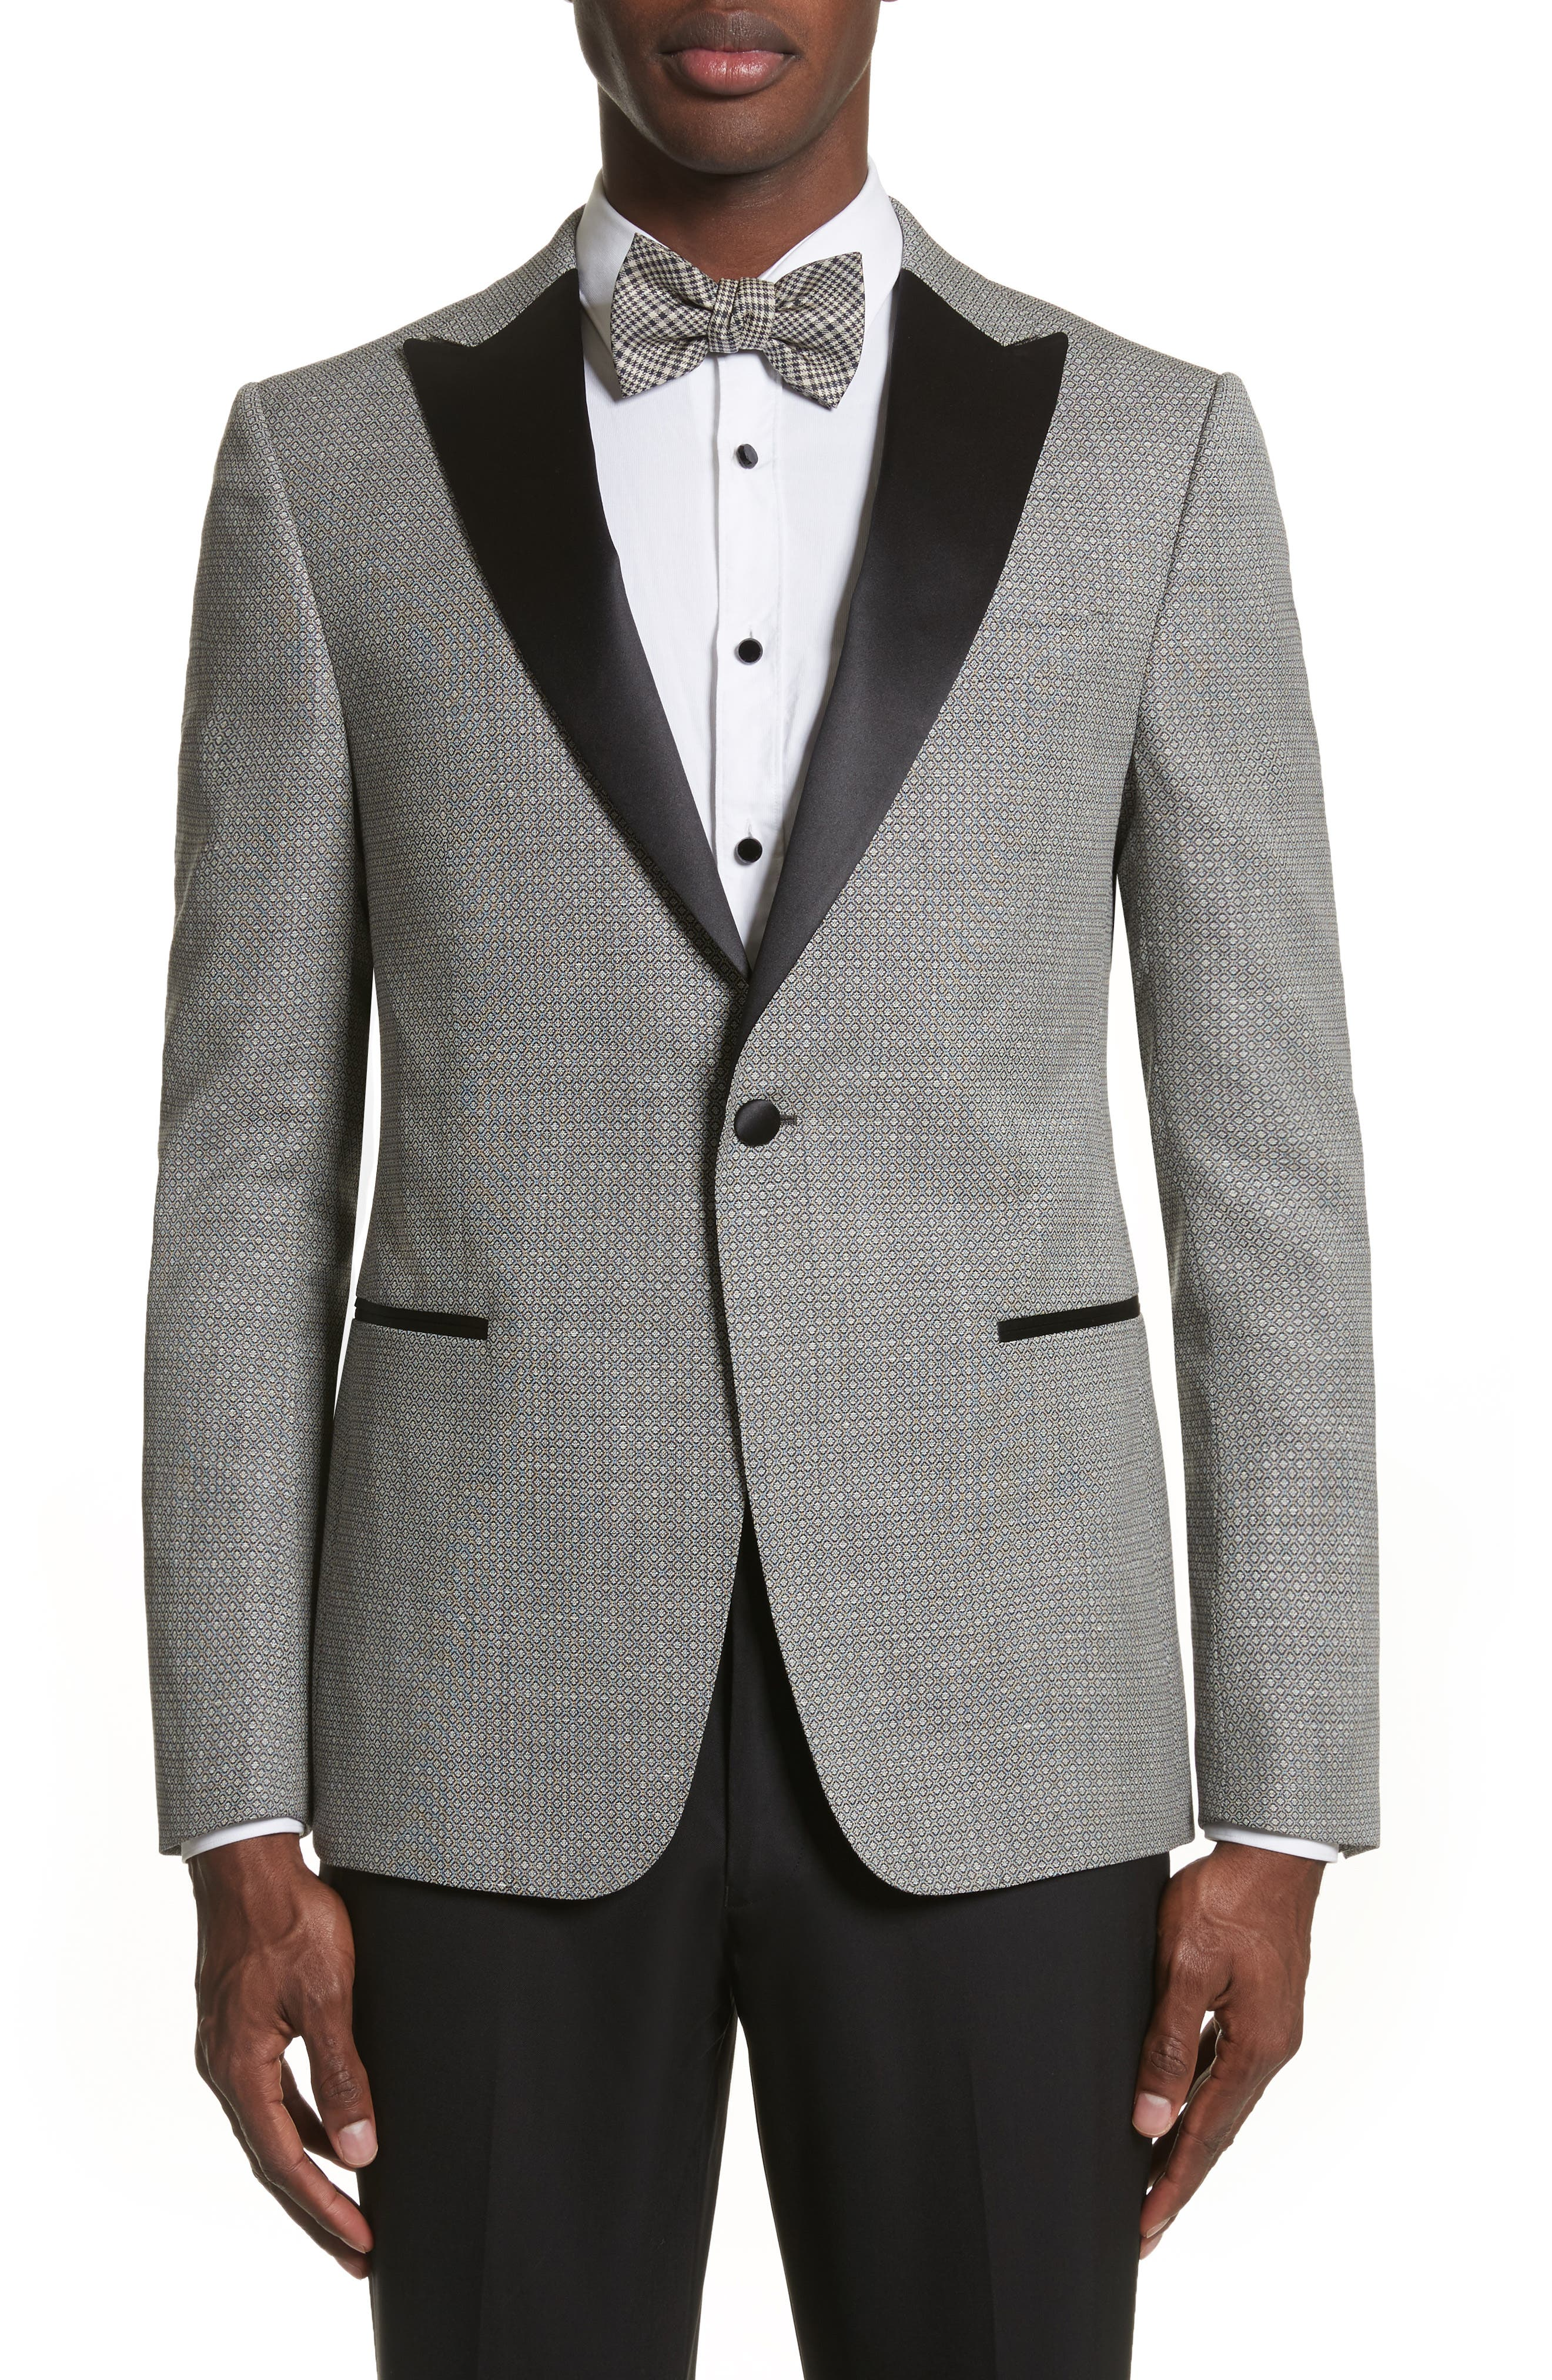 Main Image - Z Zegna Classic Fit Stretch Wool & Linen Dinner Jacket